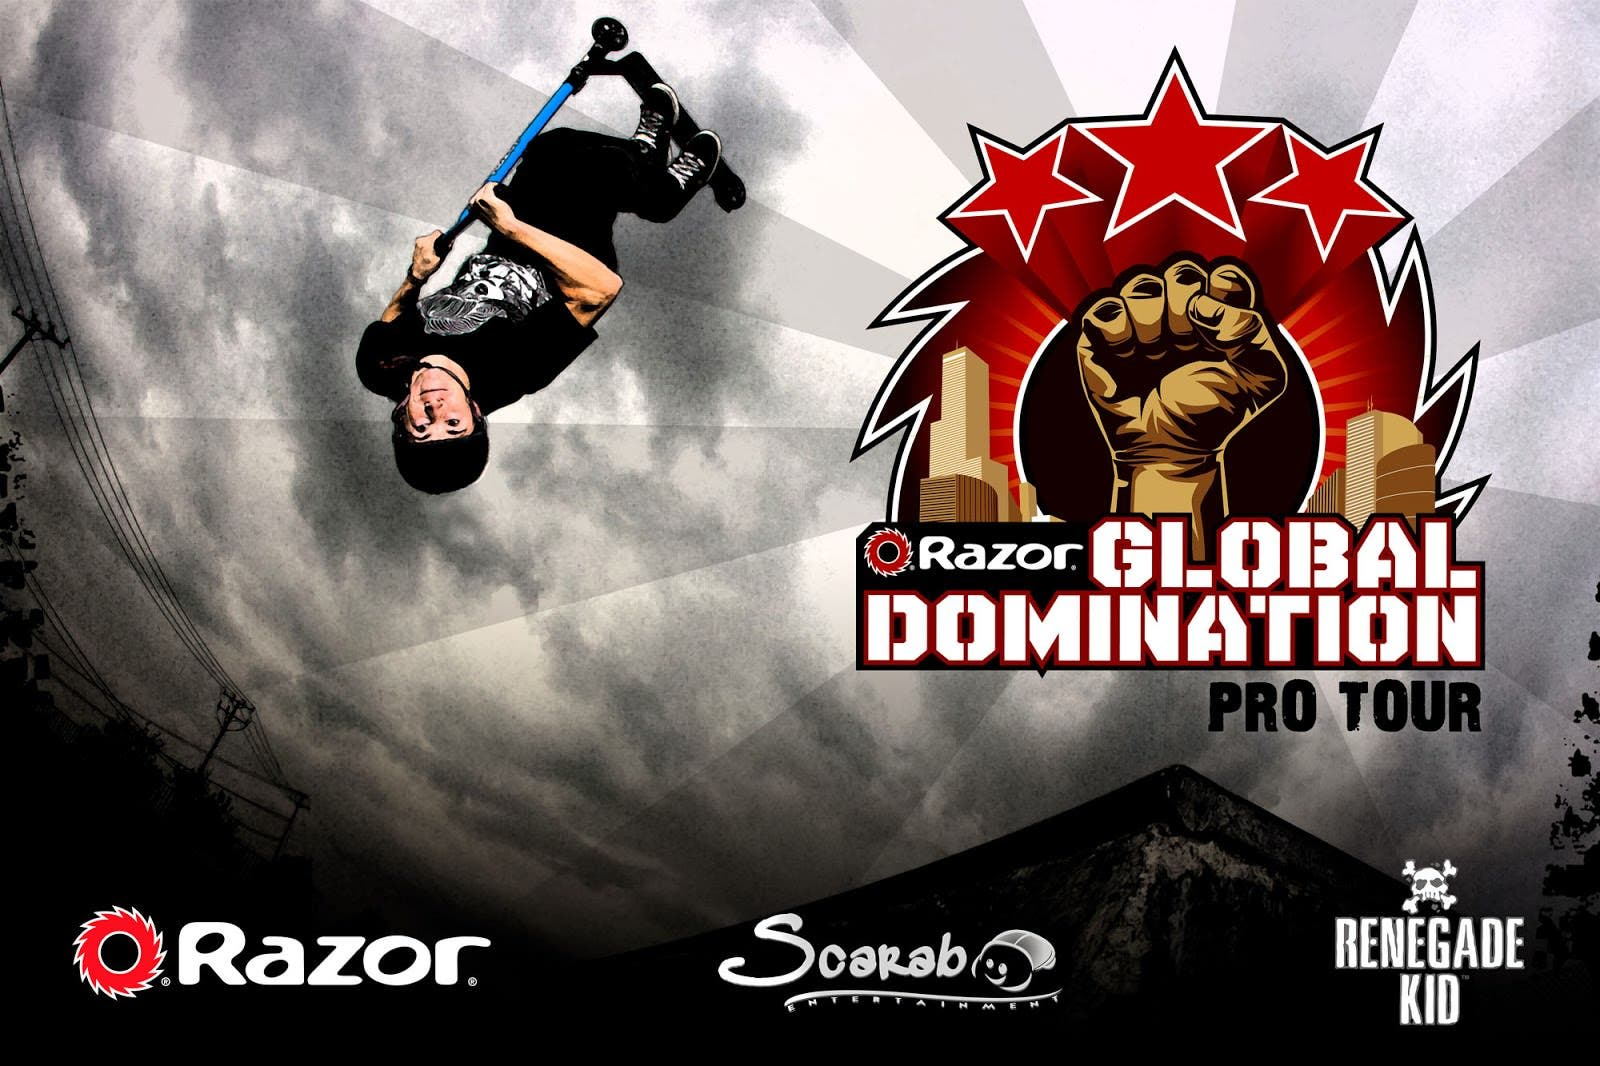 Trucos y acrobacias con Razor Global Domination Pro Tour para Wii U